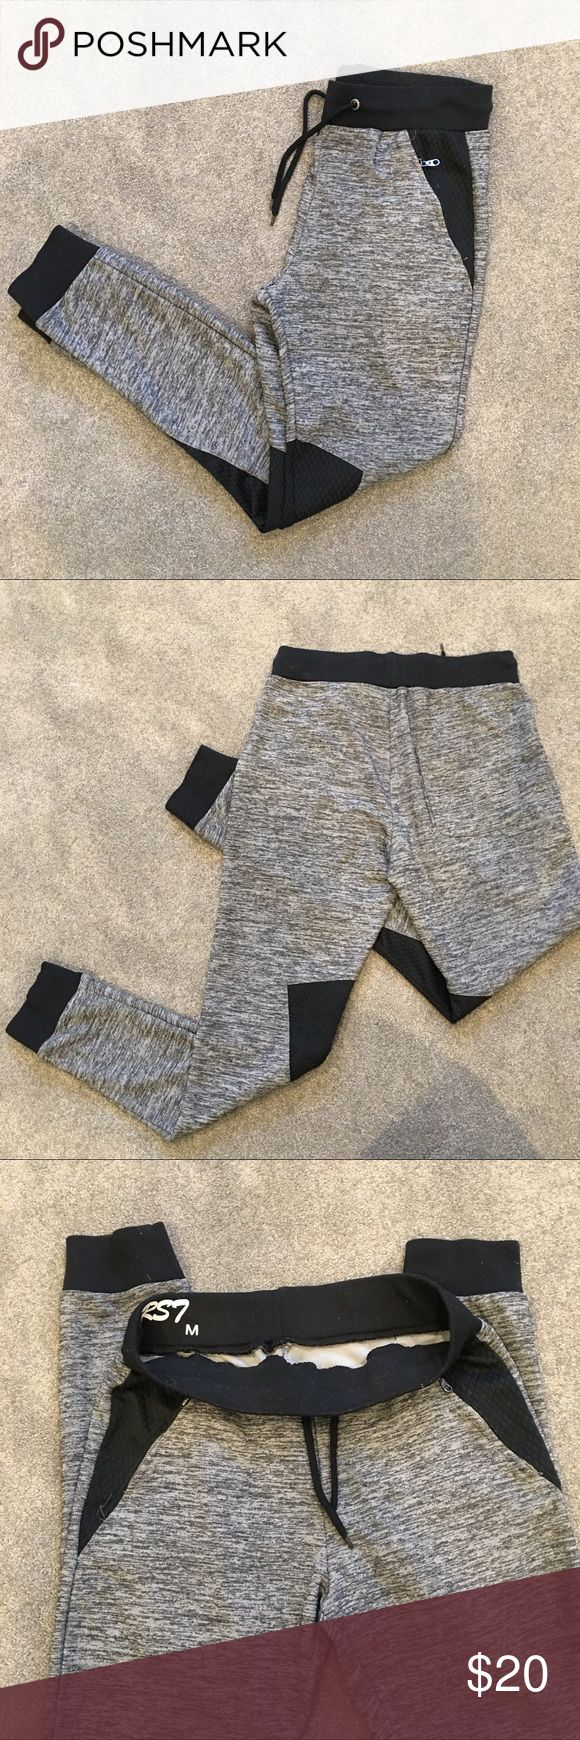 RoyalSeven Men's Joggers Sweatpants Gray/Black Men's joggers sweatpants with two front zipper pockets and one back pocket. No stains, no holes in good condition. Pants Sweatpants & Joggers